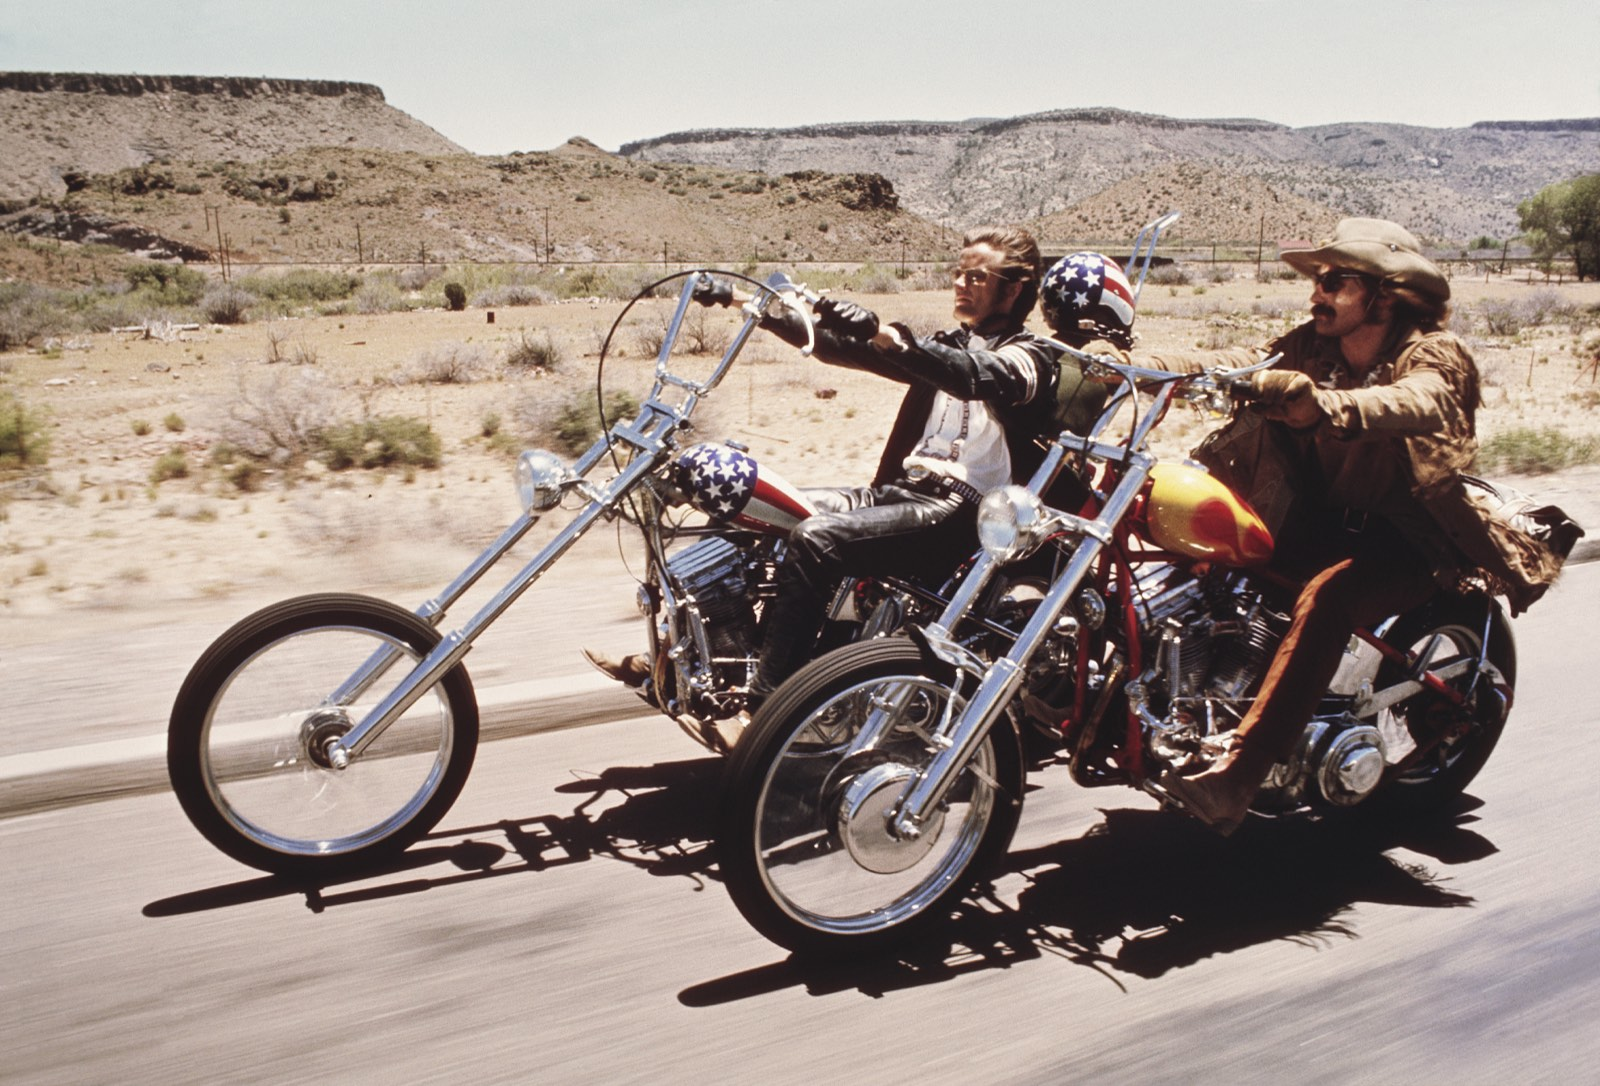 Easy Rider and Moulin Rouge Feature in Cannes Classics 2019 Line Up